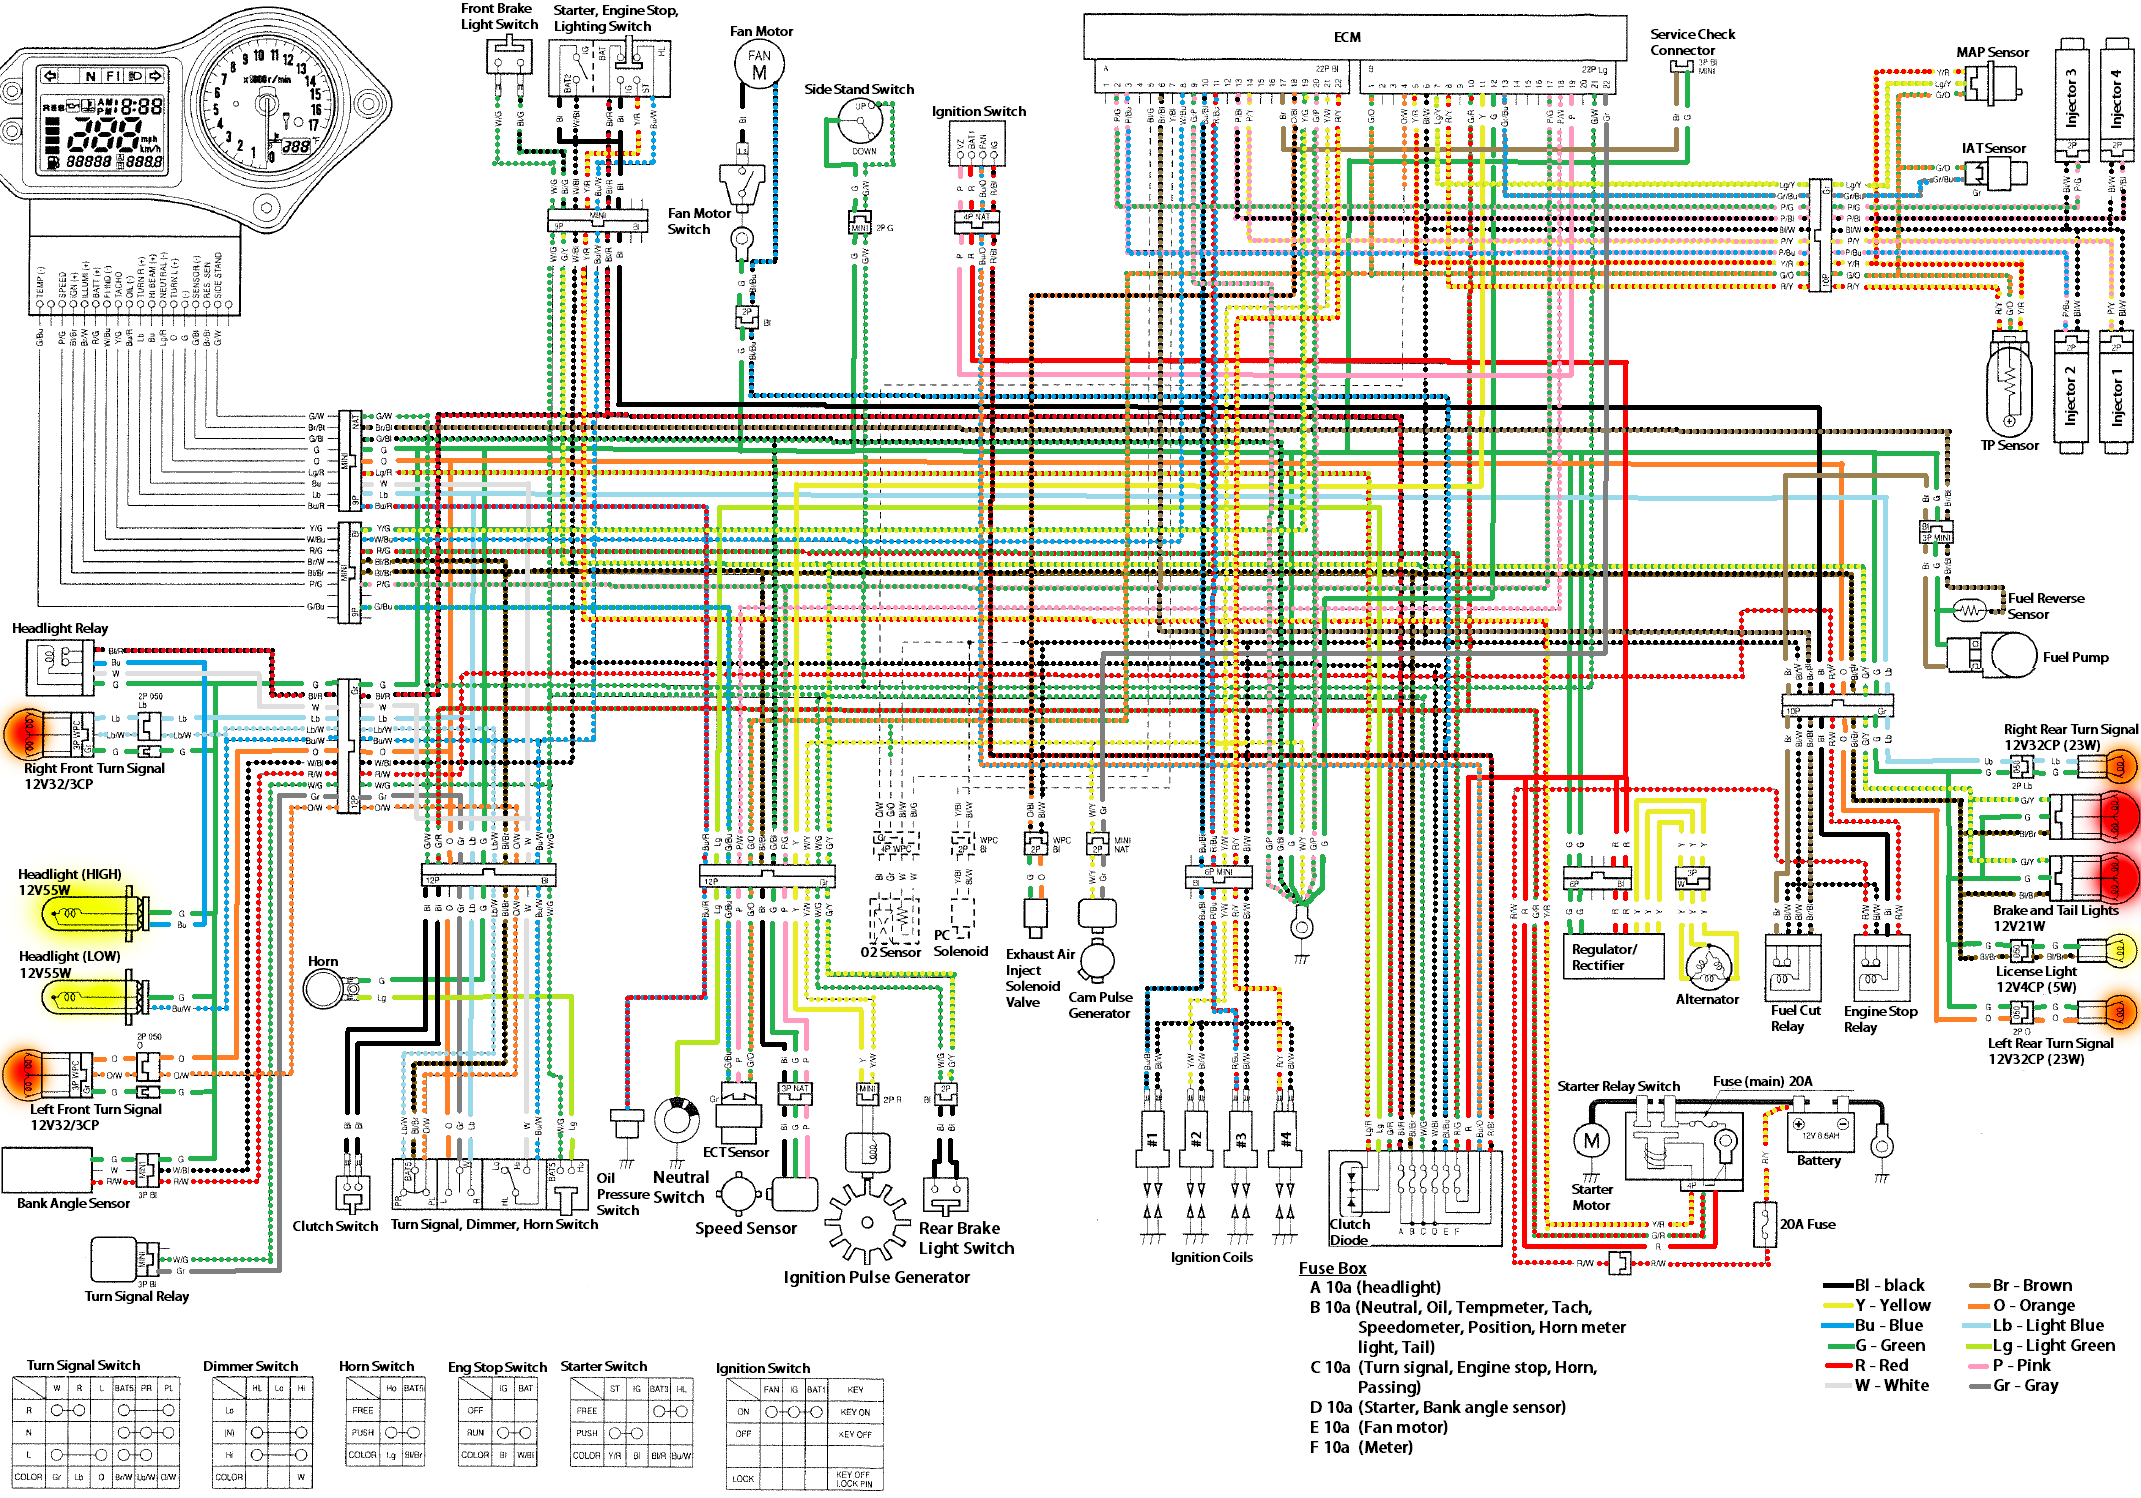 DY_8463] Wiring Diagram For 97 Accord Get Free Image About Wiring DiagramEgre Sapebe Mohammedshrine Librar Wiring 101